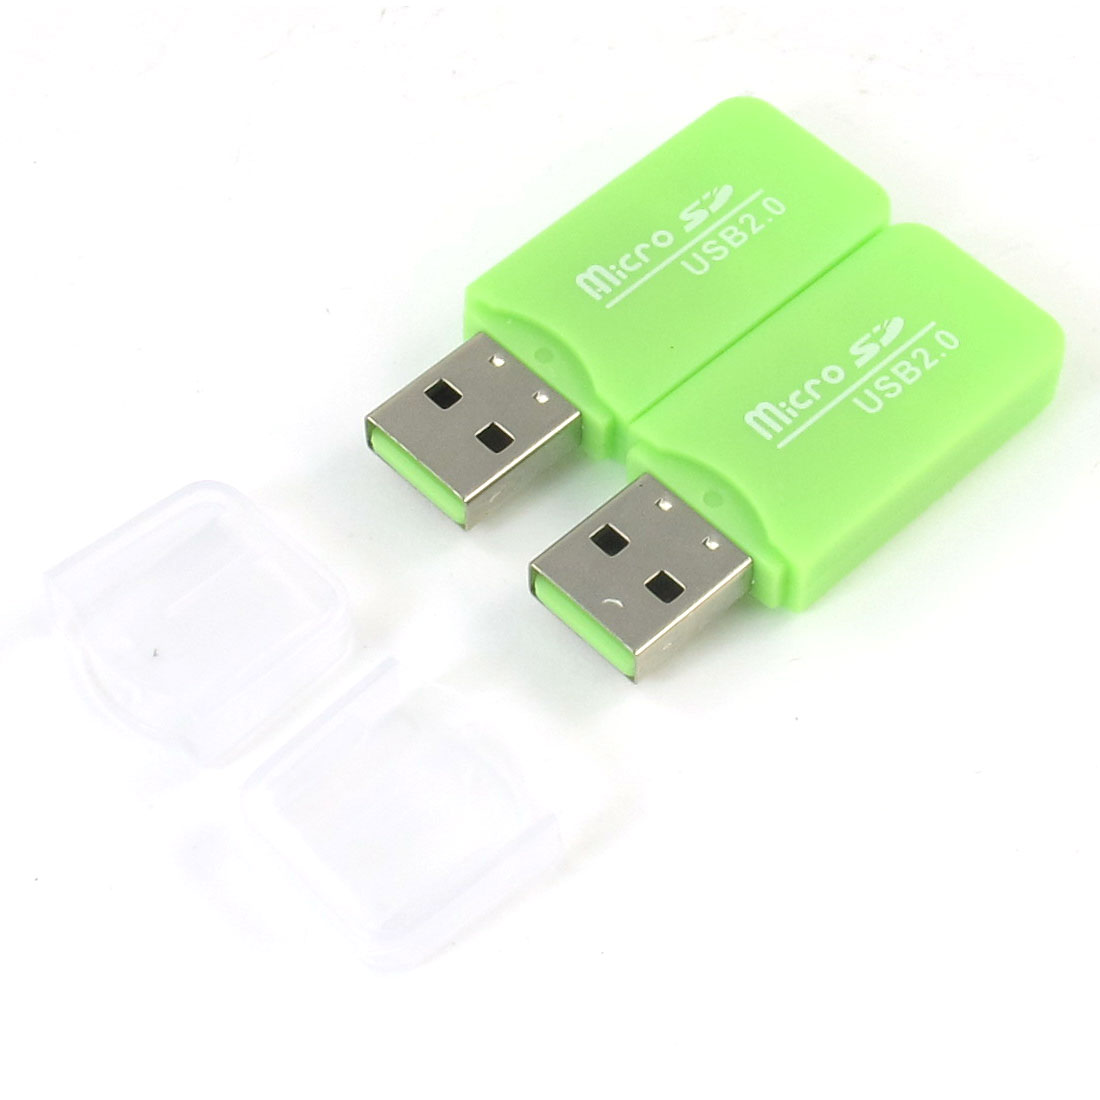 2 Pcs Light Green Plastic Houseing USB 2.0 Micro SD Memory Card Reader